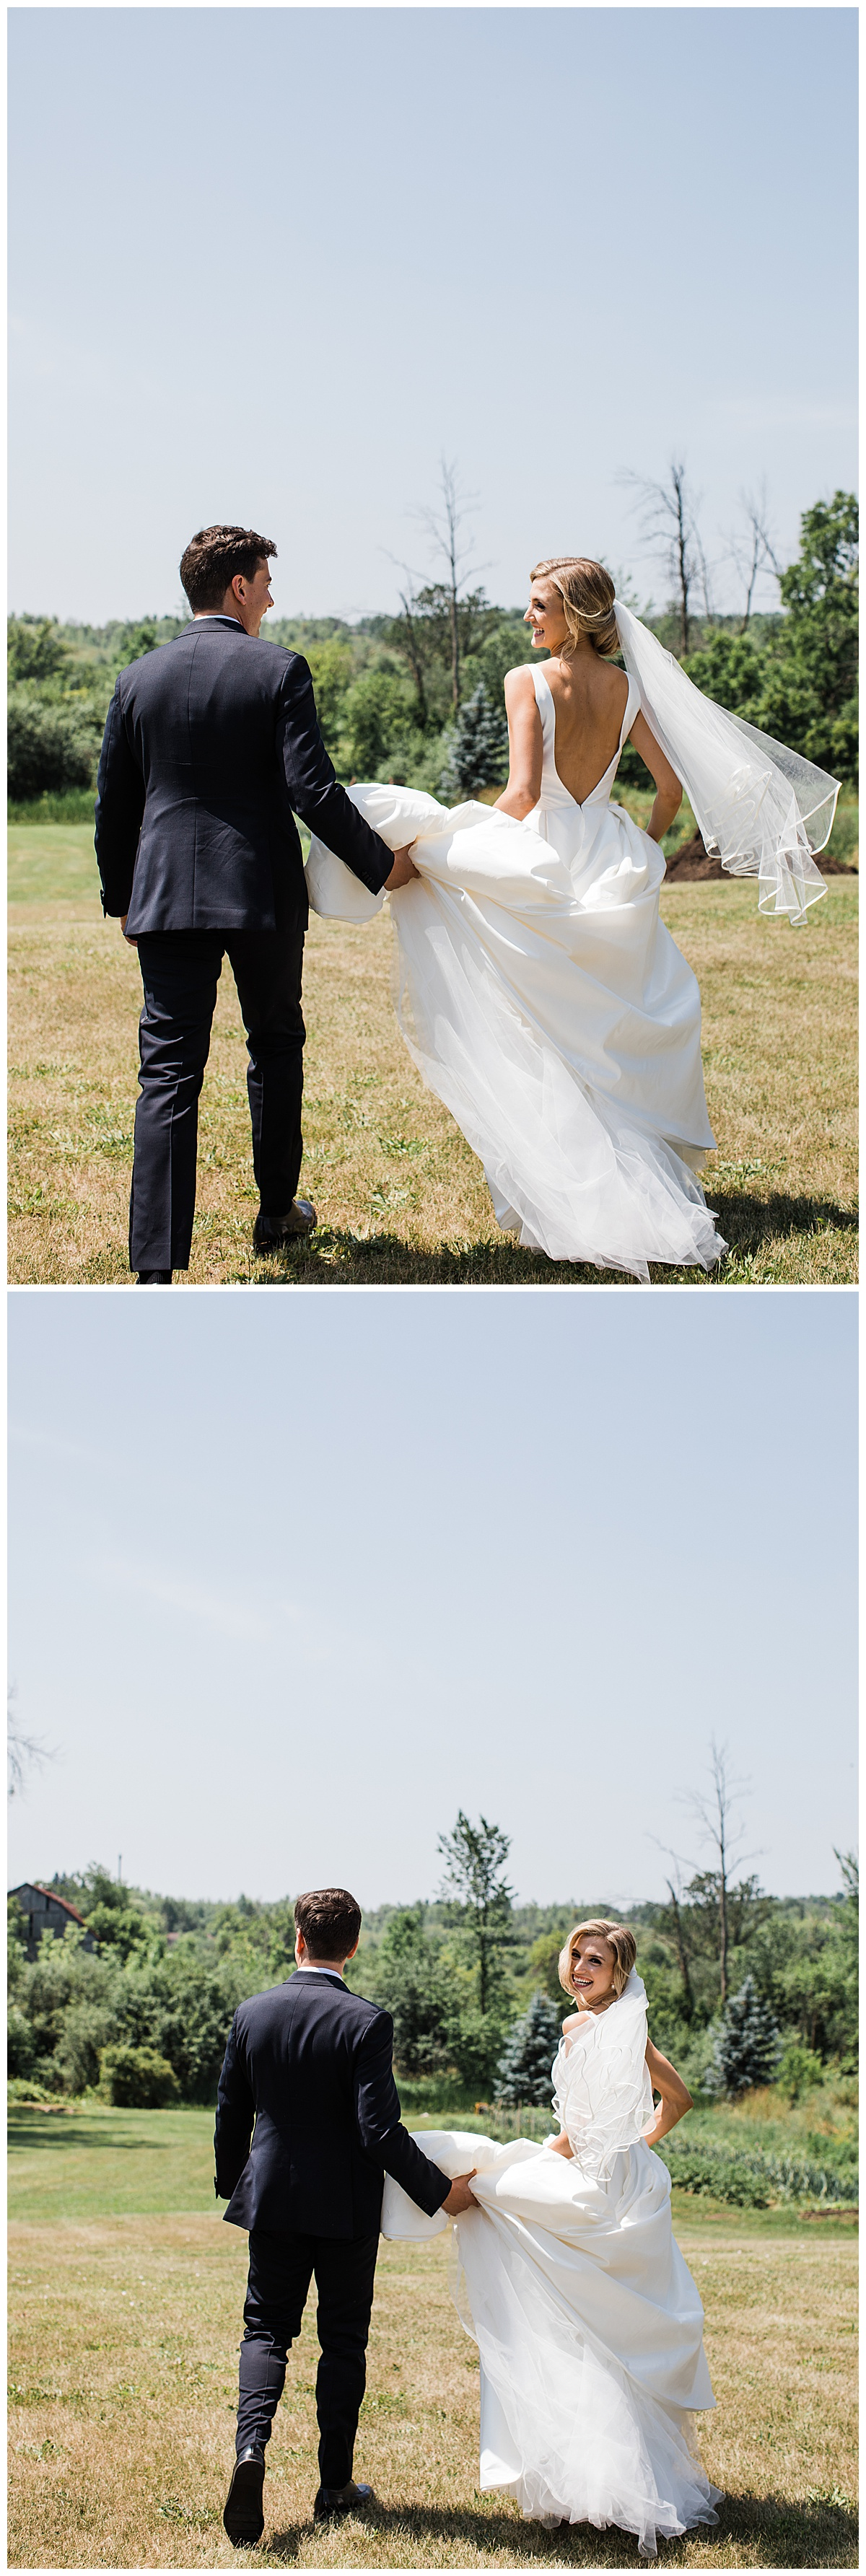 Bride and groom walking away in a field while groom holds bride's train  Ontario wedding  Toronto wedding photographer  3photography